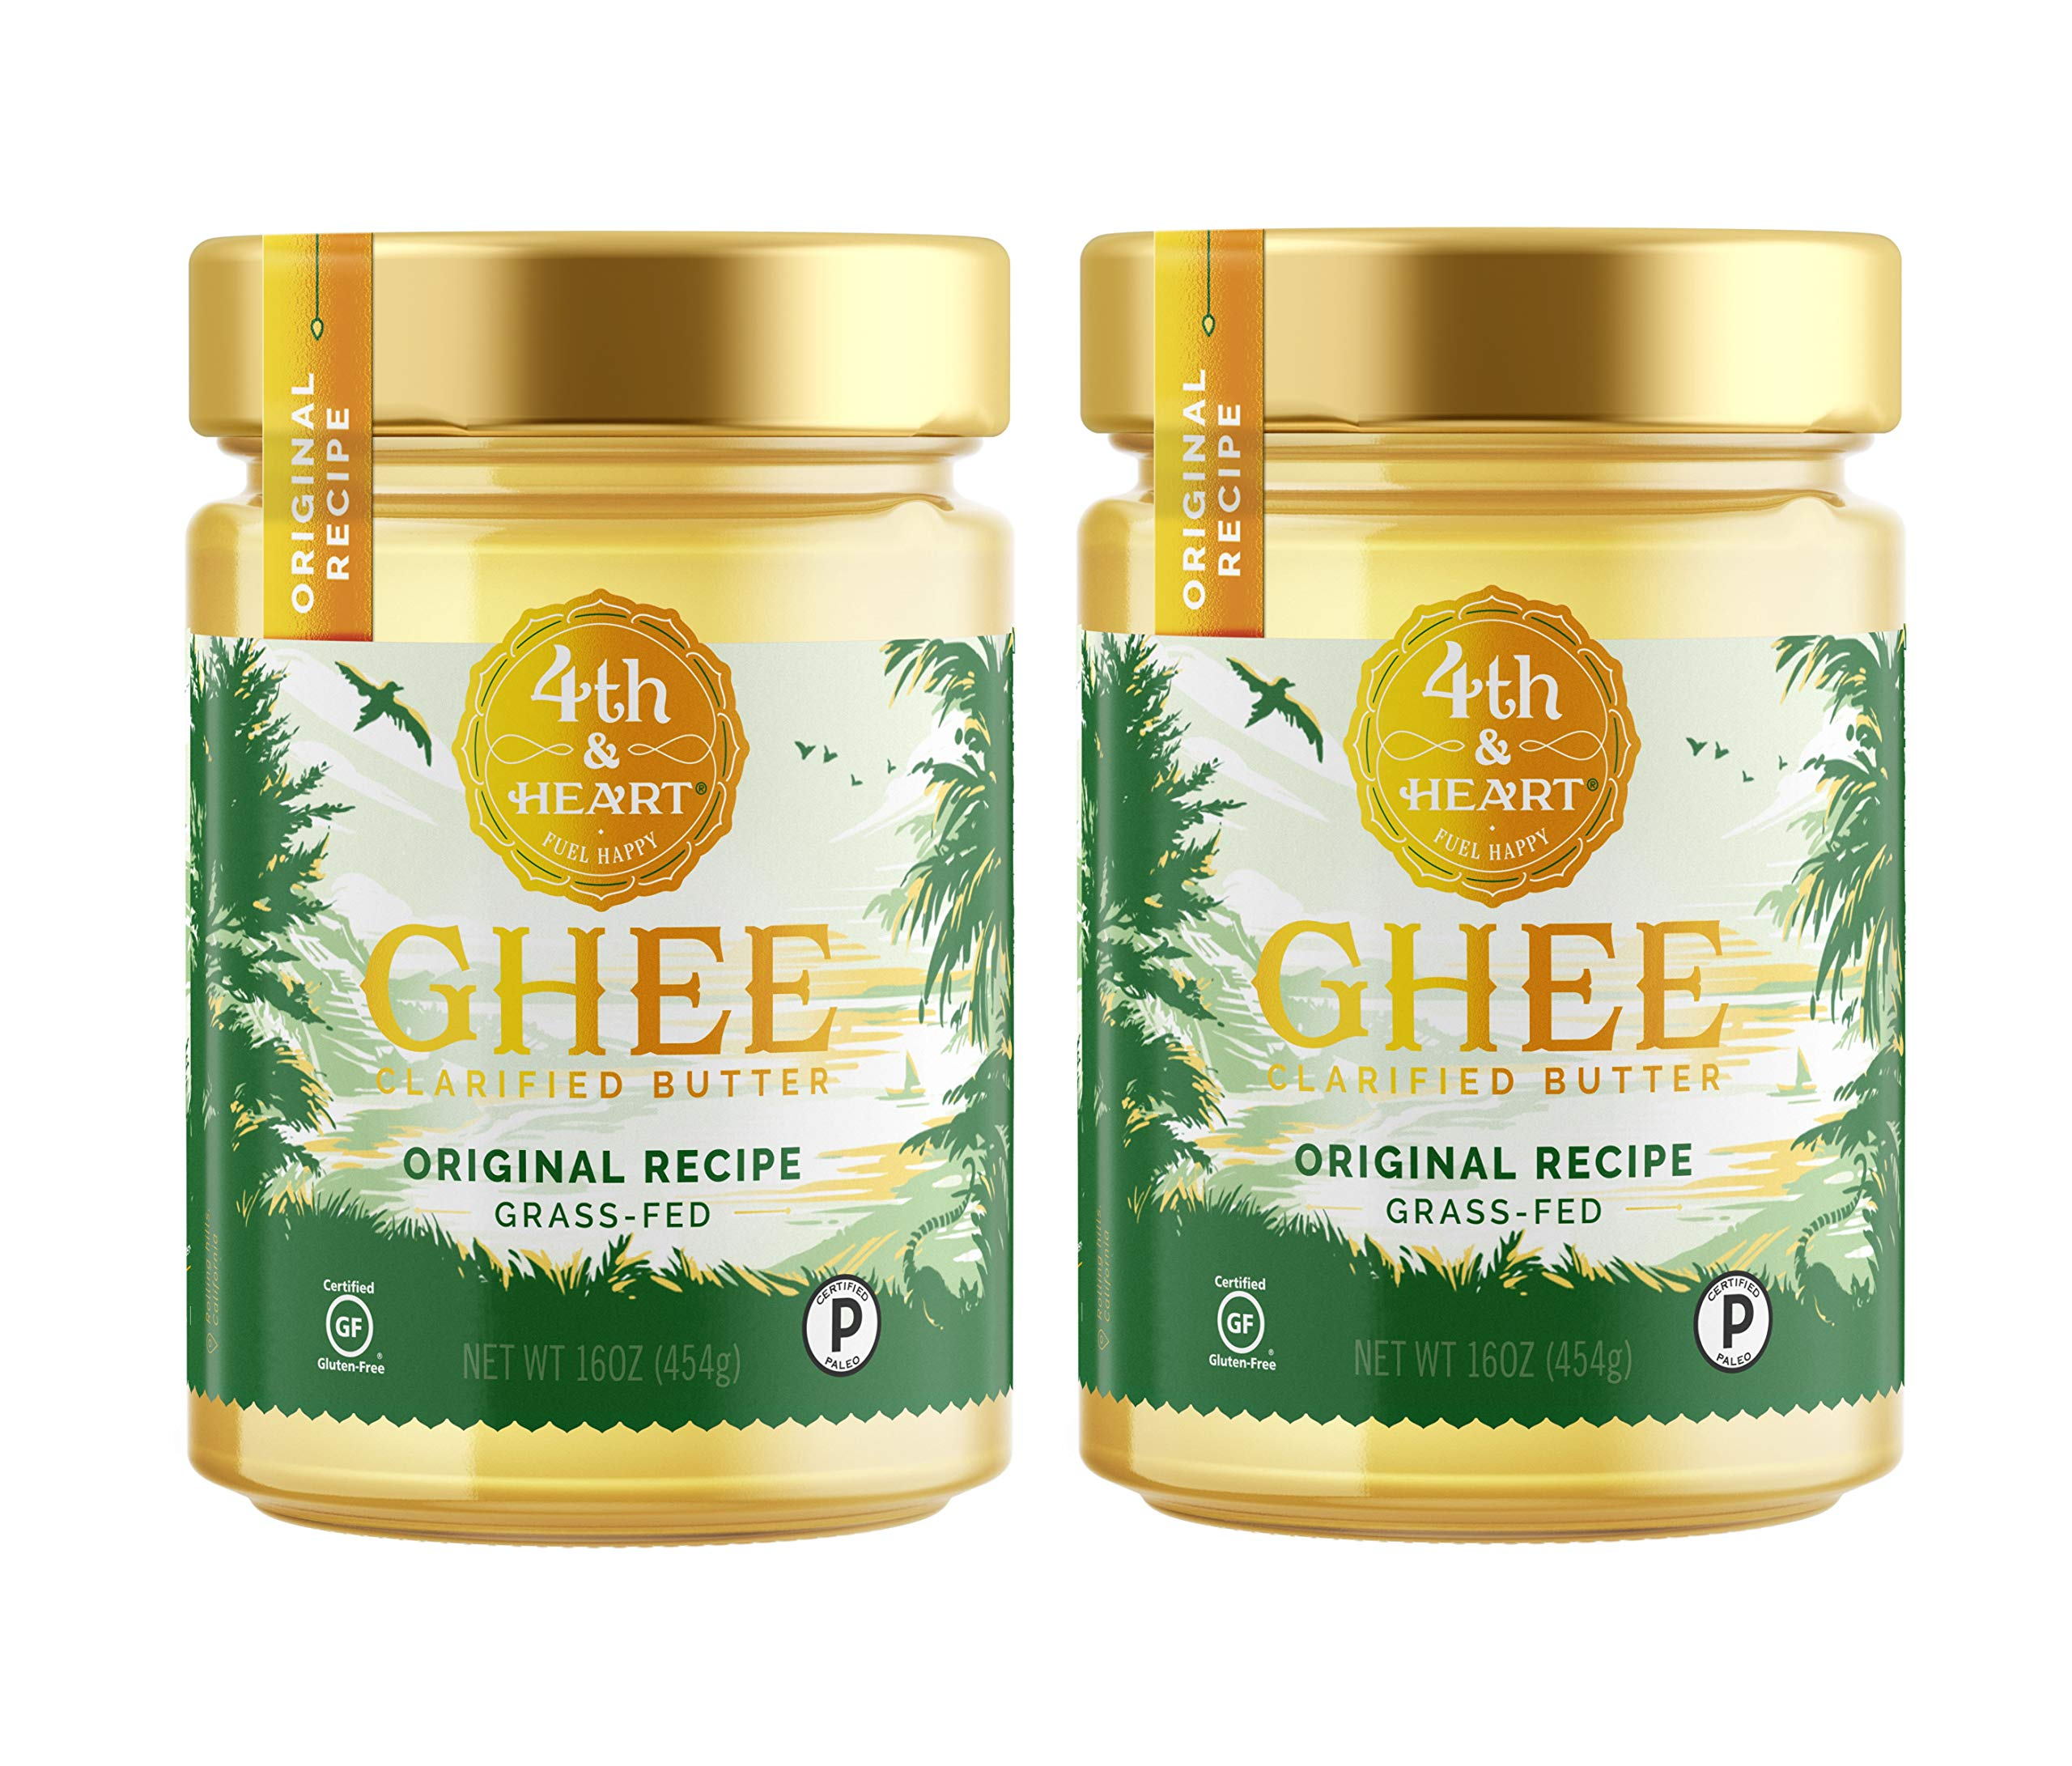 Original Grass Fed Ghee Butter by 4th & Heart, 32 Ounce (2 x 16oz Jars), Pasture Raised, Non-GMO, Lactose and Casein Free, Certified Paleo, Keto-Friendly